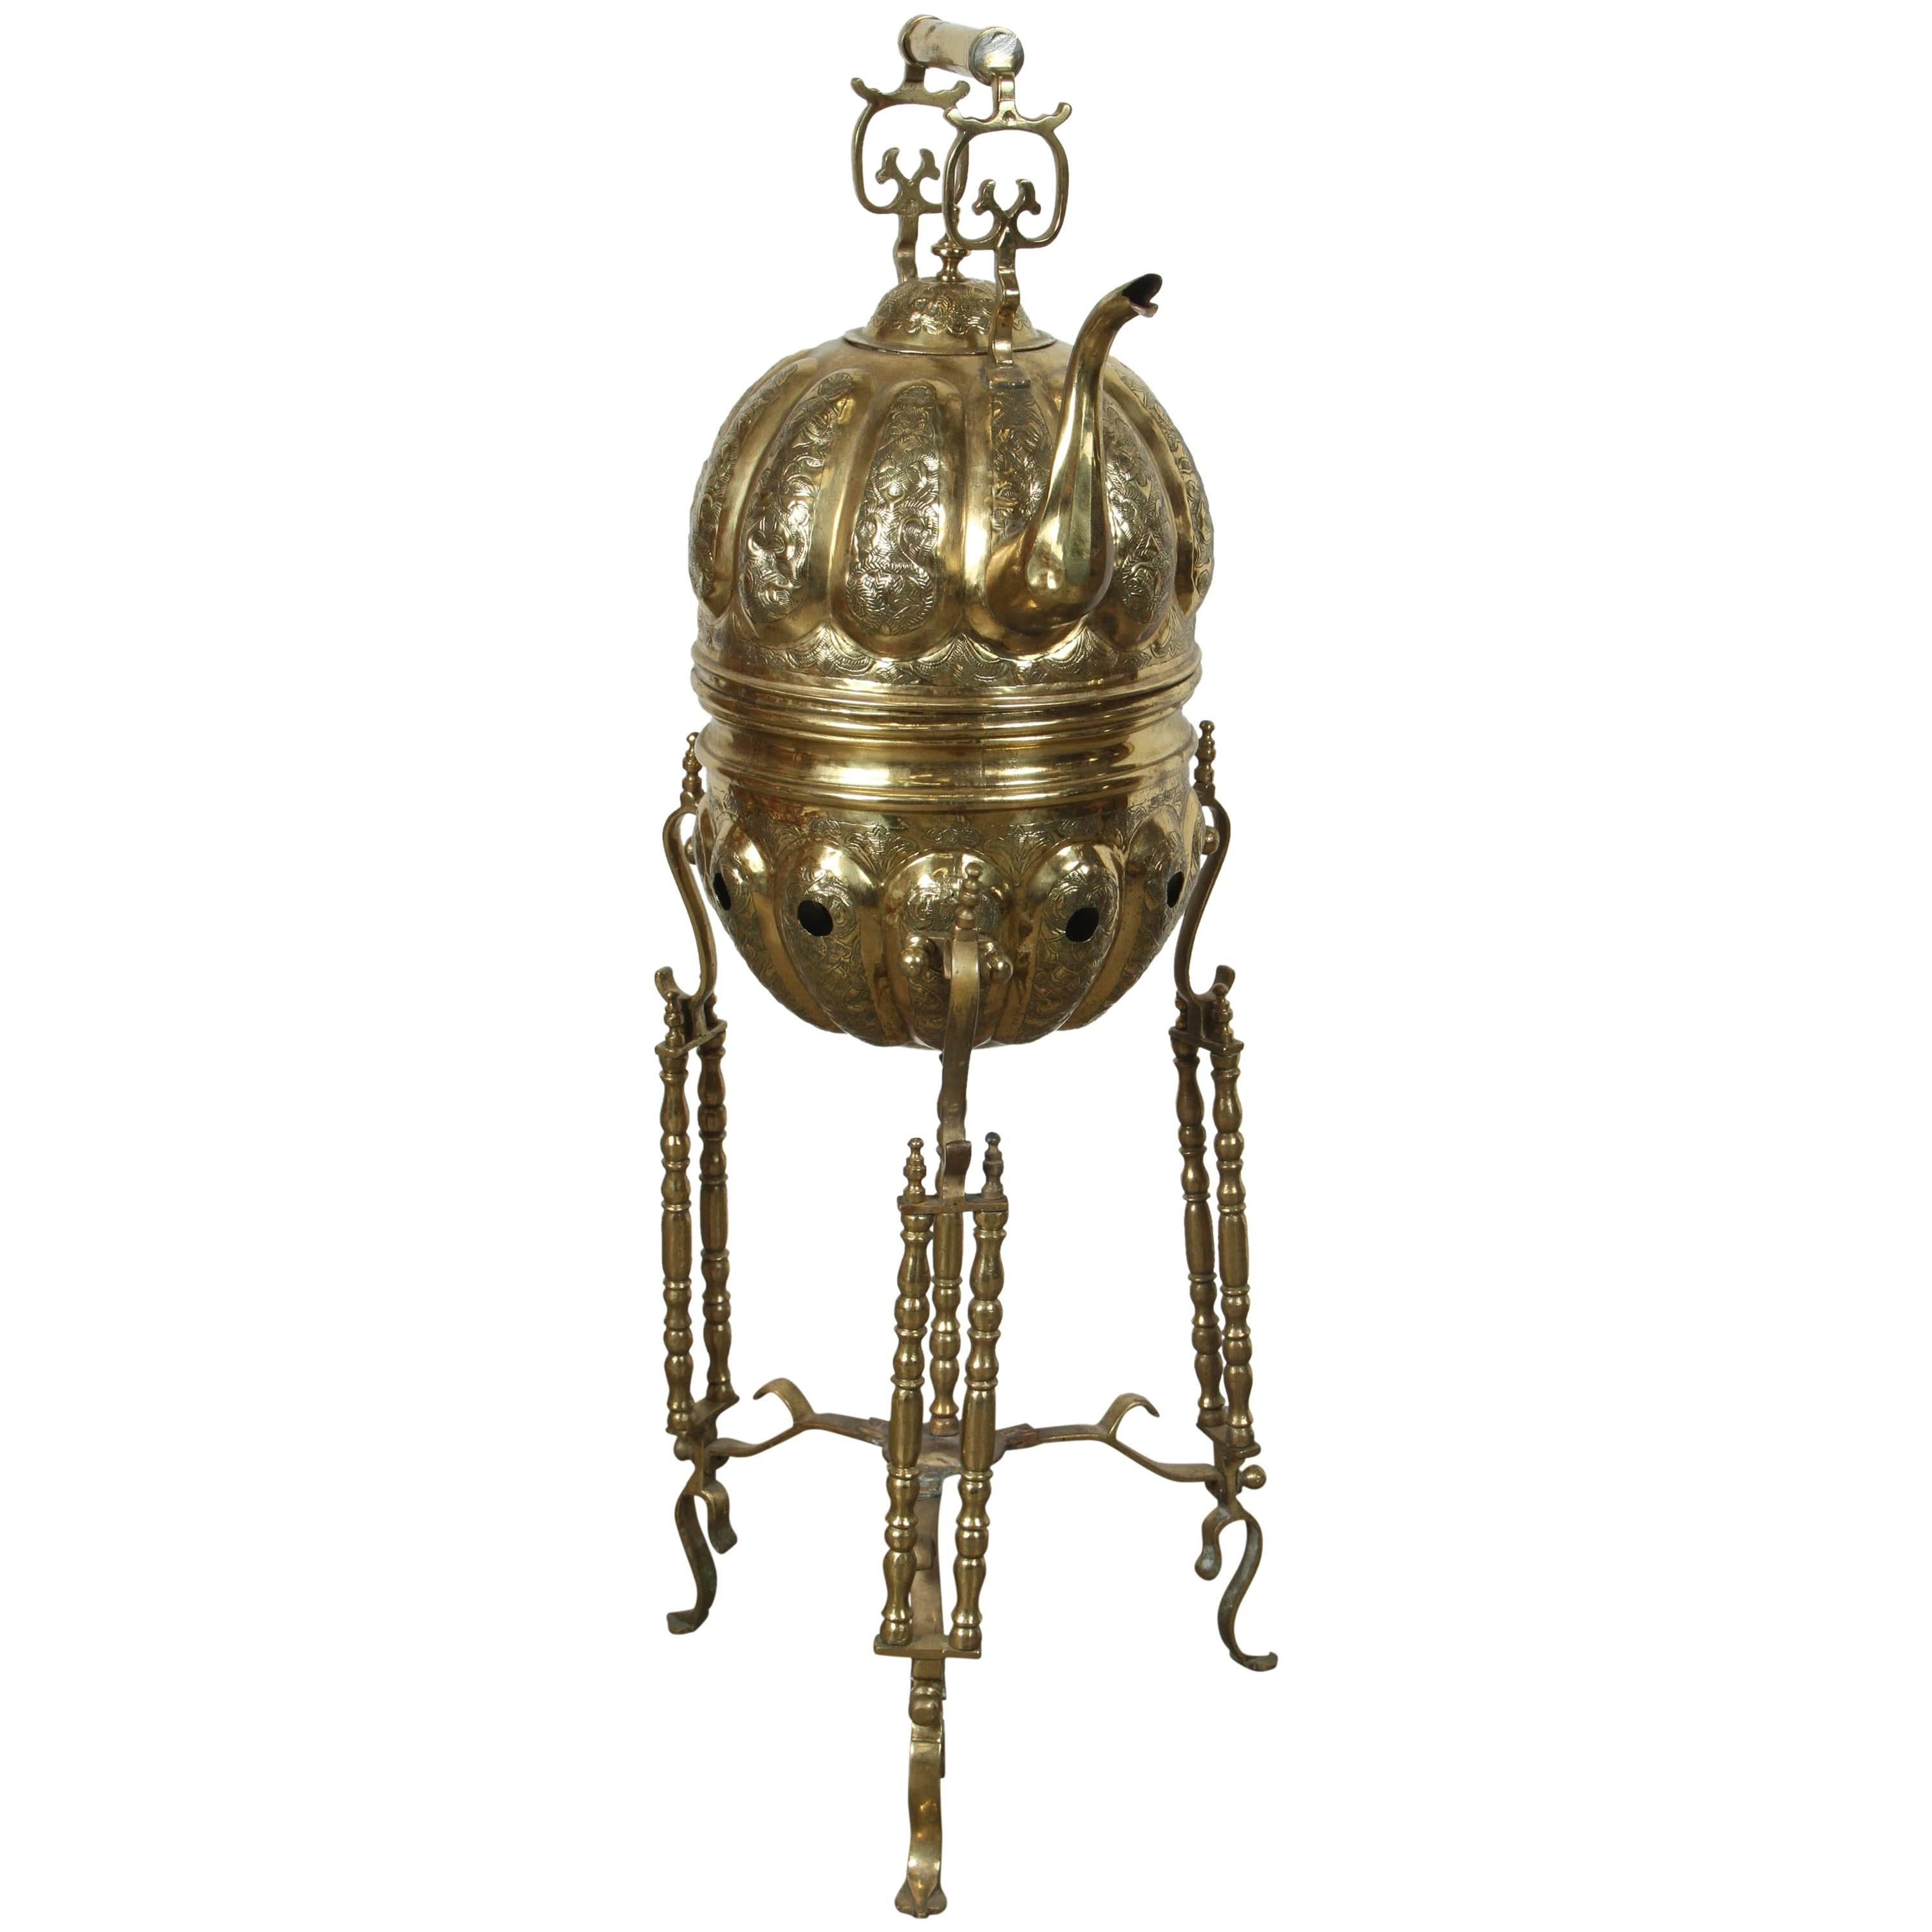 Moroccan Brass Tea Kettle on Stand Handcrafted in Fez Morocco